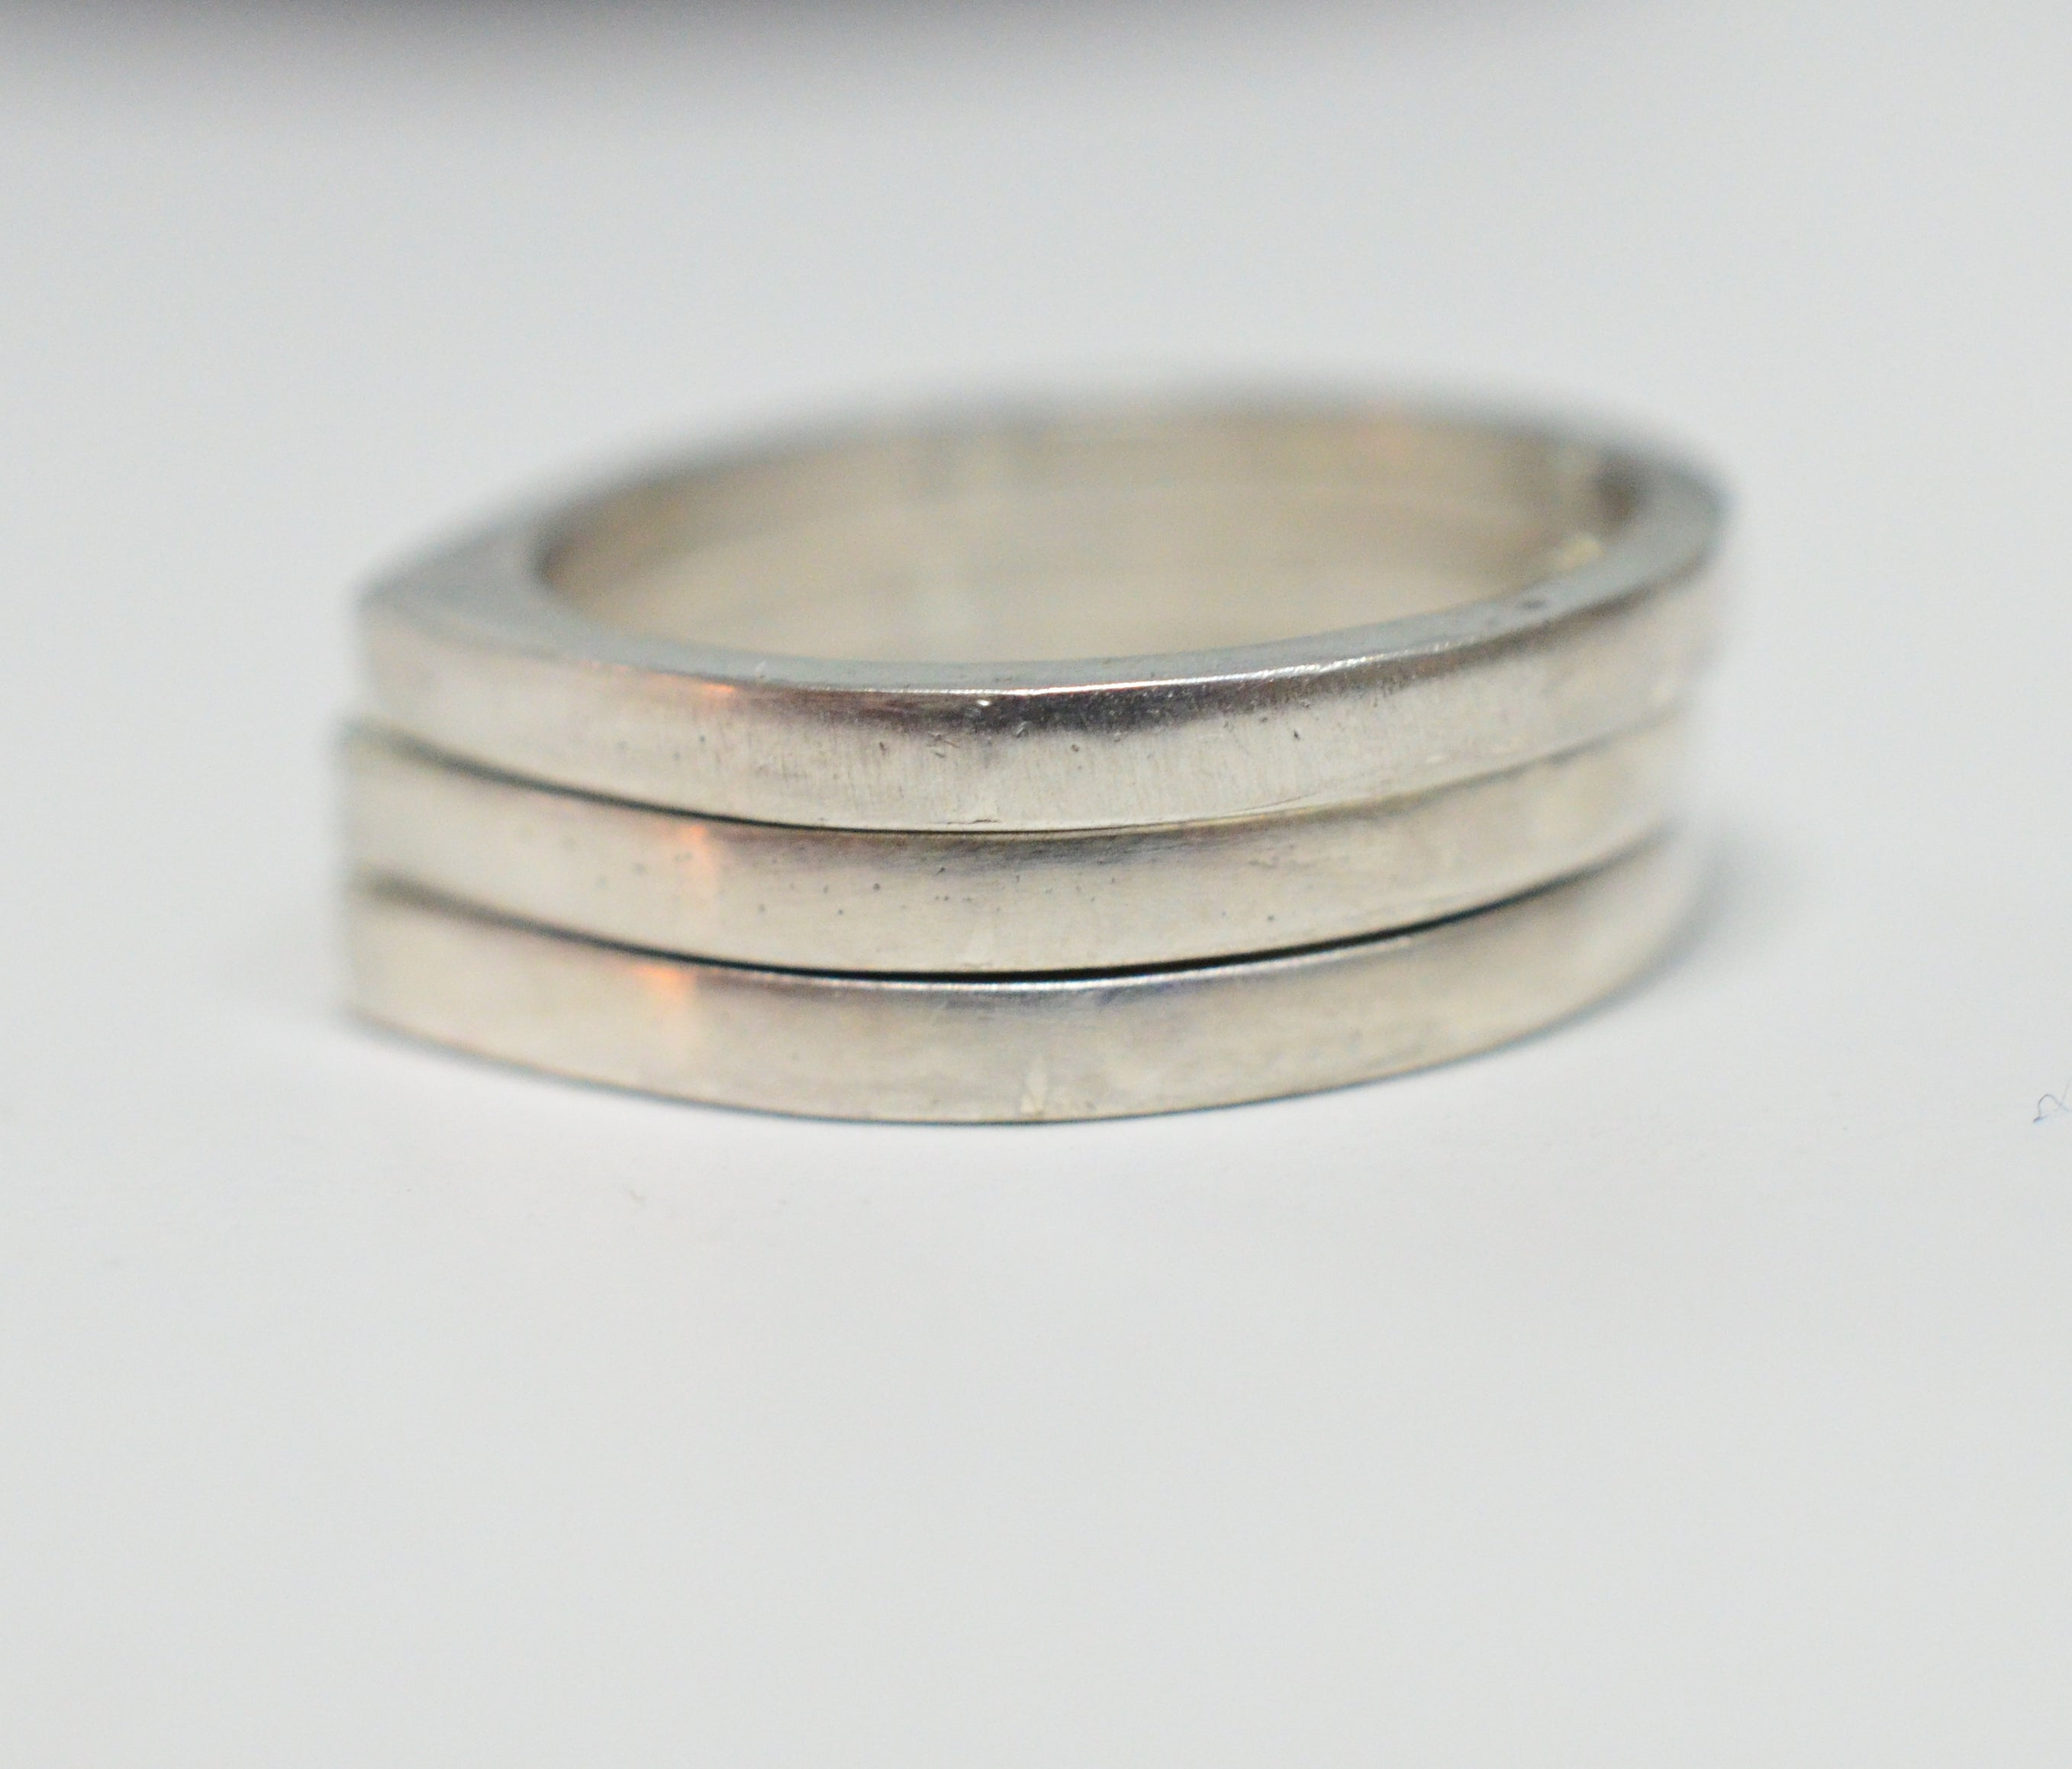 Silver thin ring for teenagers, young girls and women's in all ages. - AlmaJewelryShop Online boutique for gold and silver jewelry